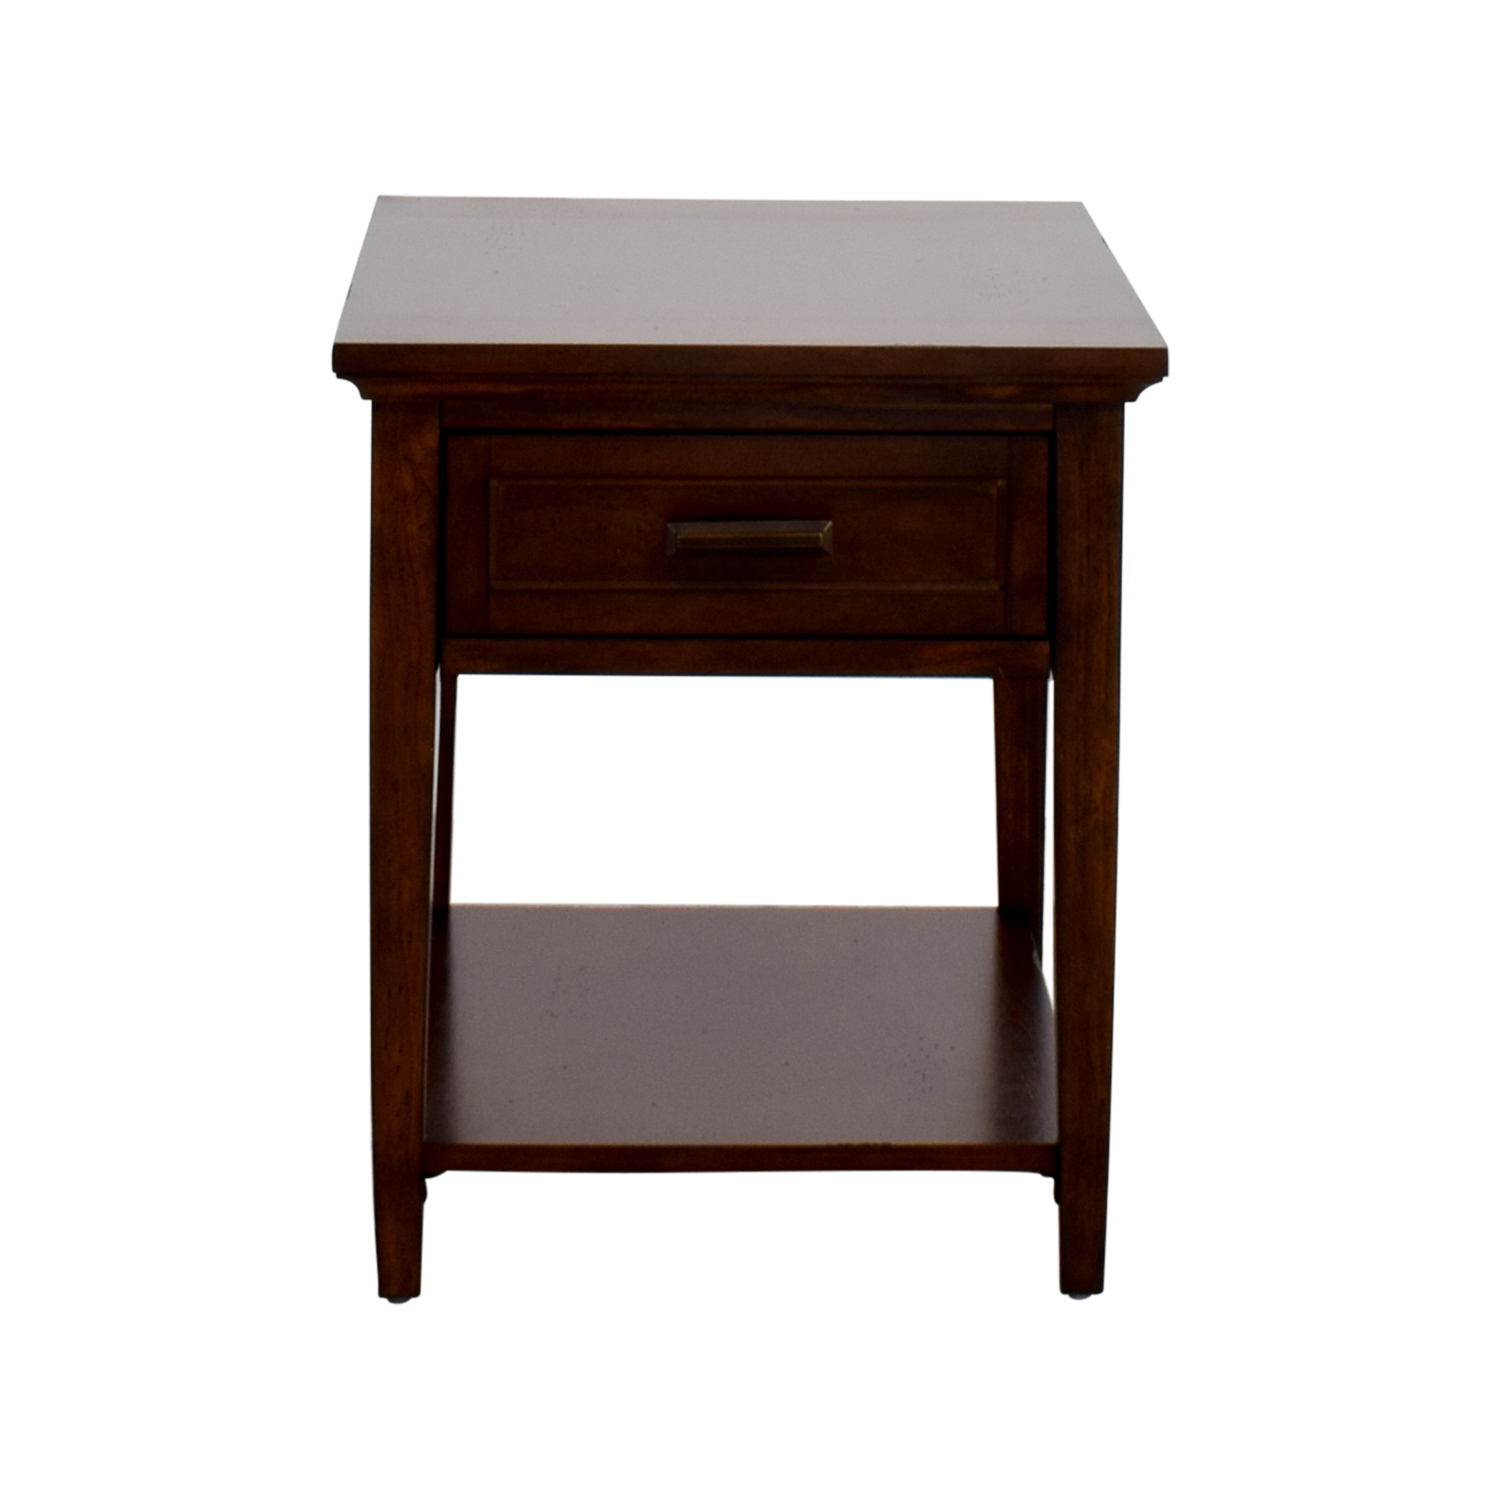 Raymour & Flanigan Raymour & Flanigan Harbour Bay End Table on sale